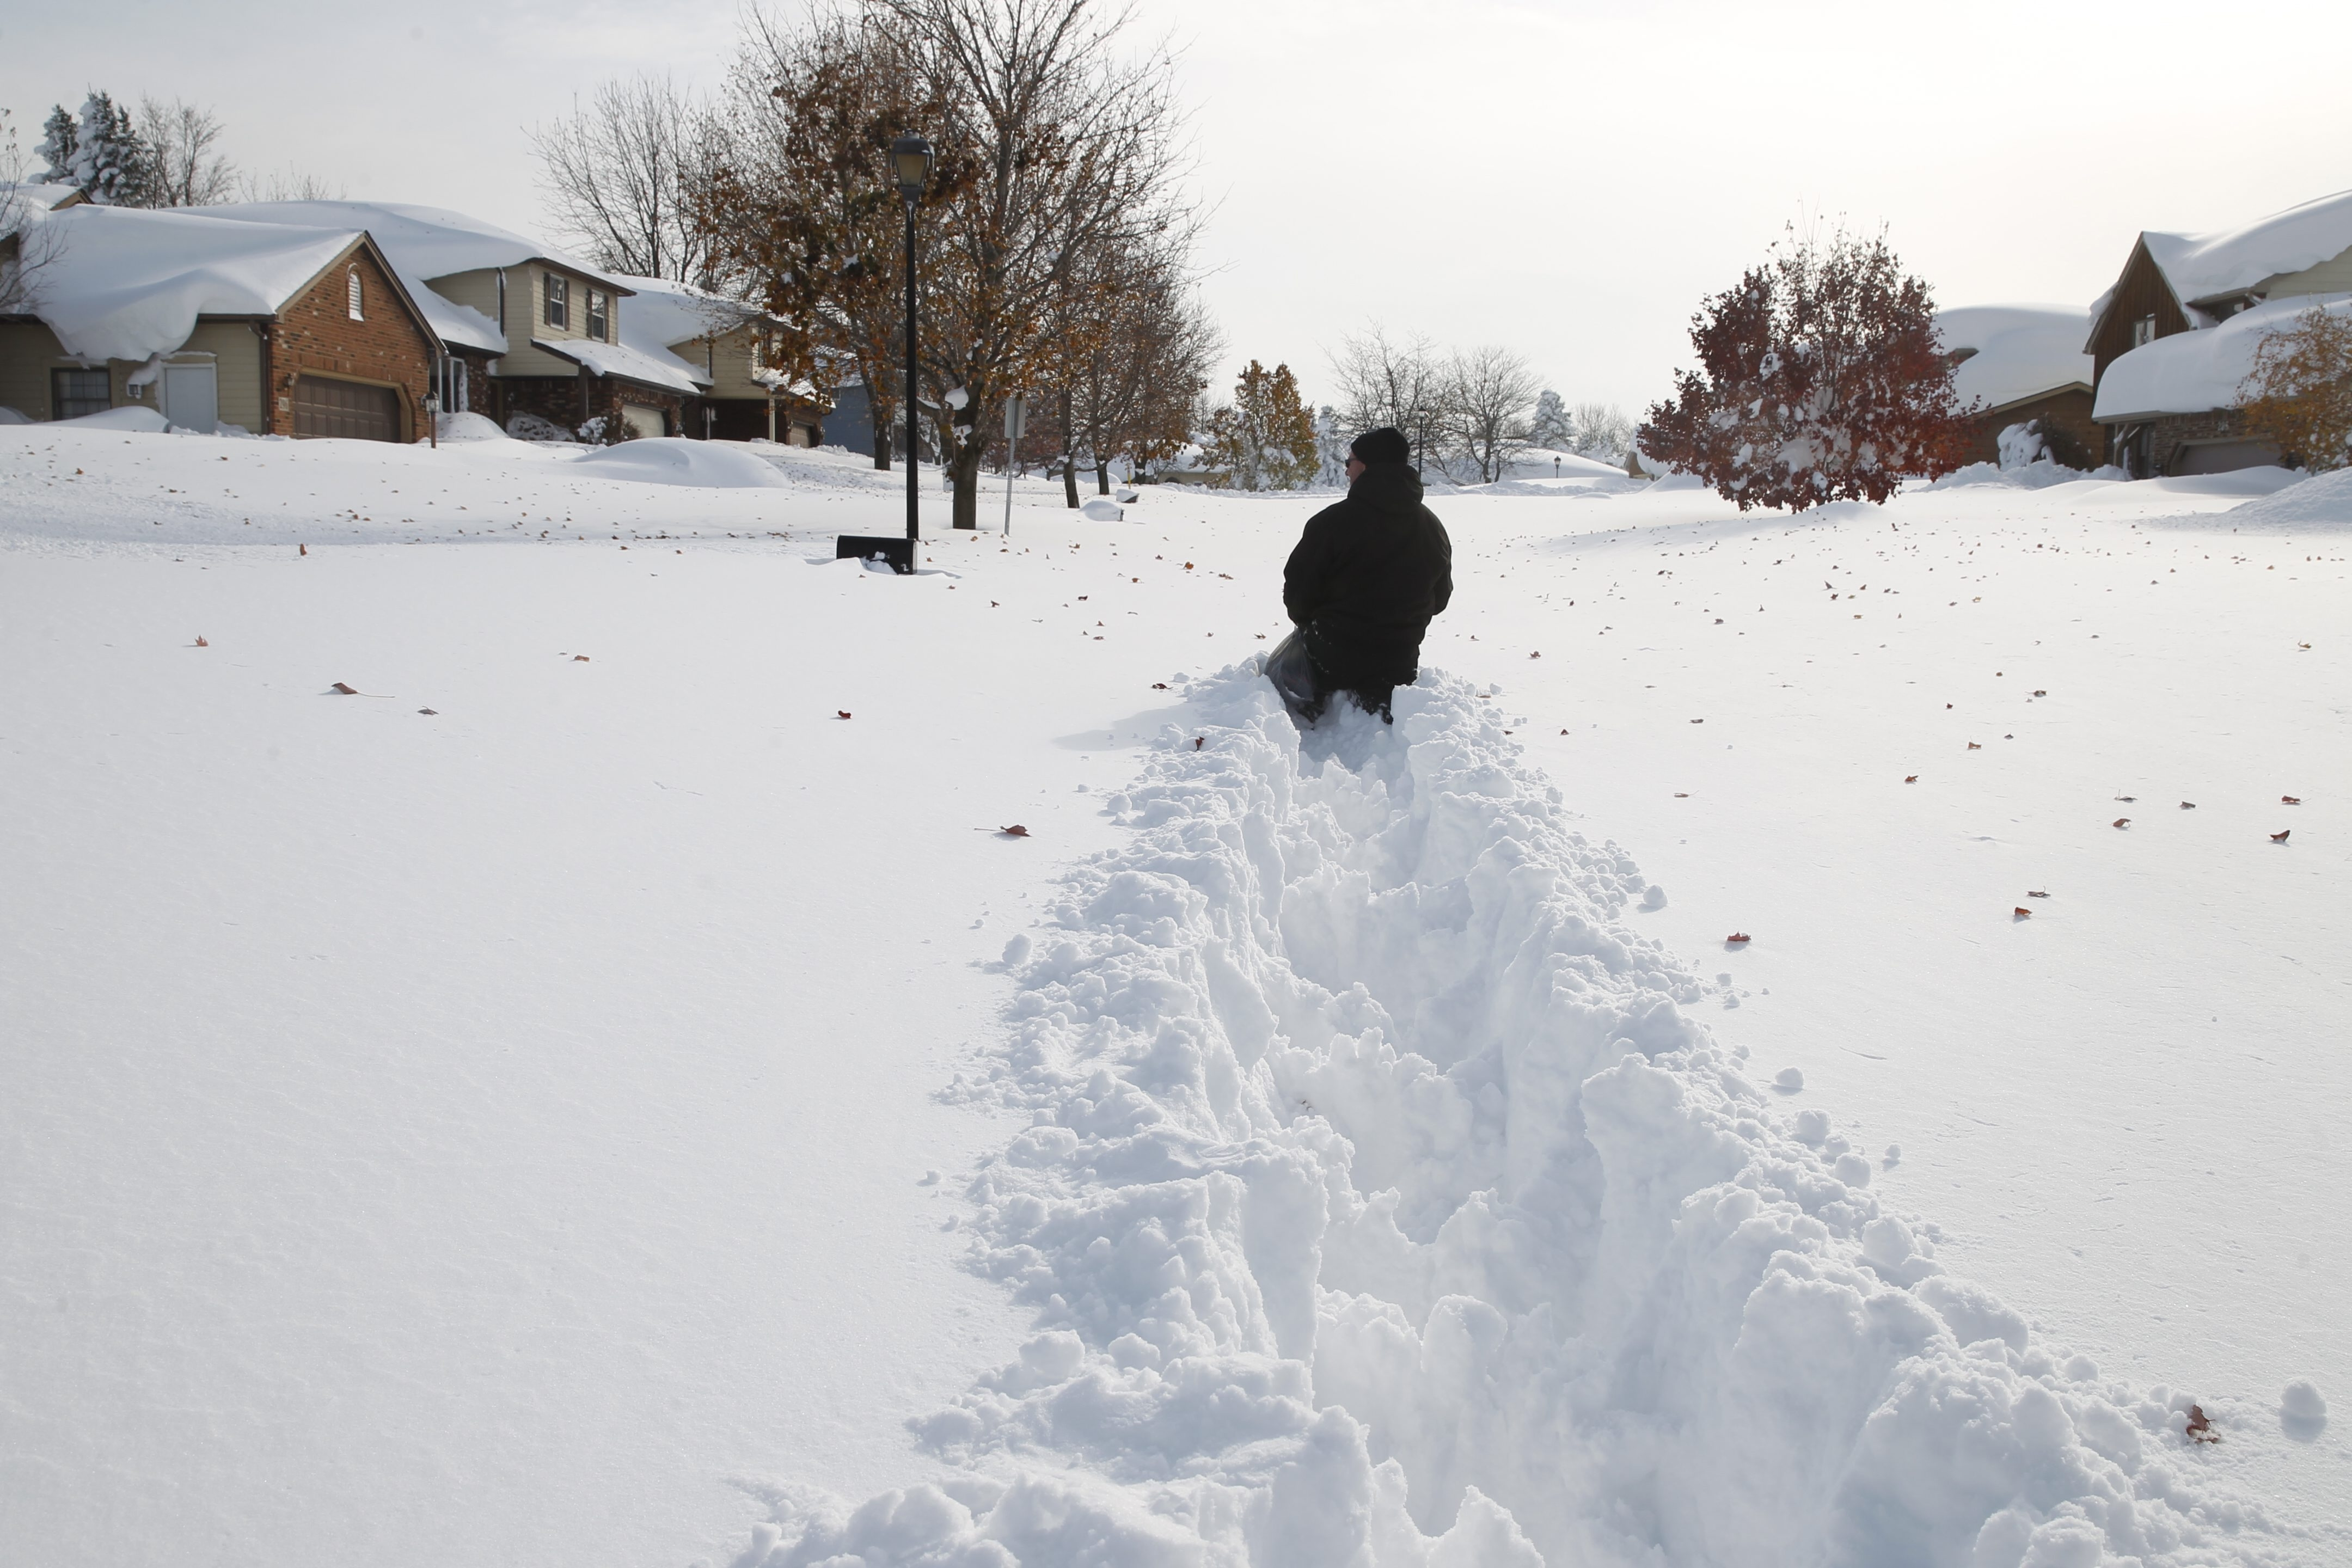 Mike Lackie trudges through hip-deep snow on Barbados Drive in Cheektowaga Wednesday. The neighborhood was among those hardest hit on Tuesday.